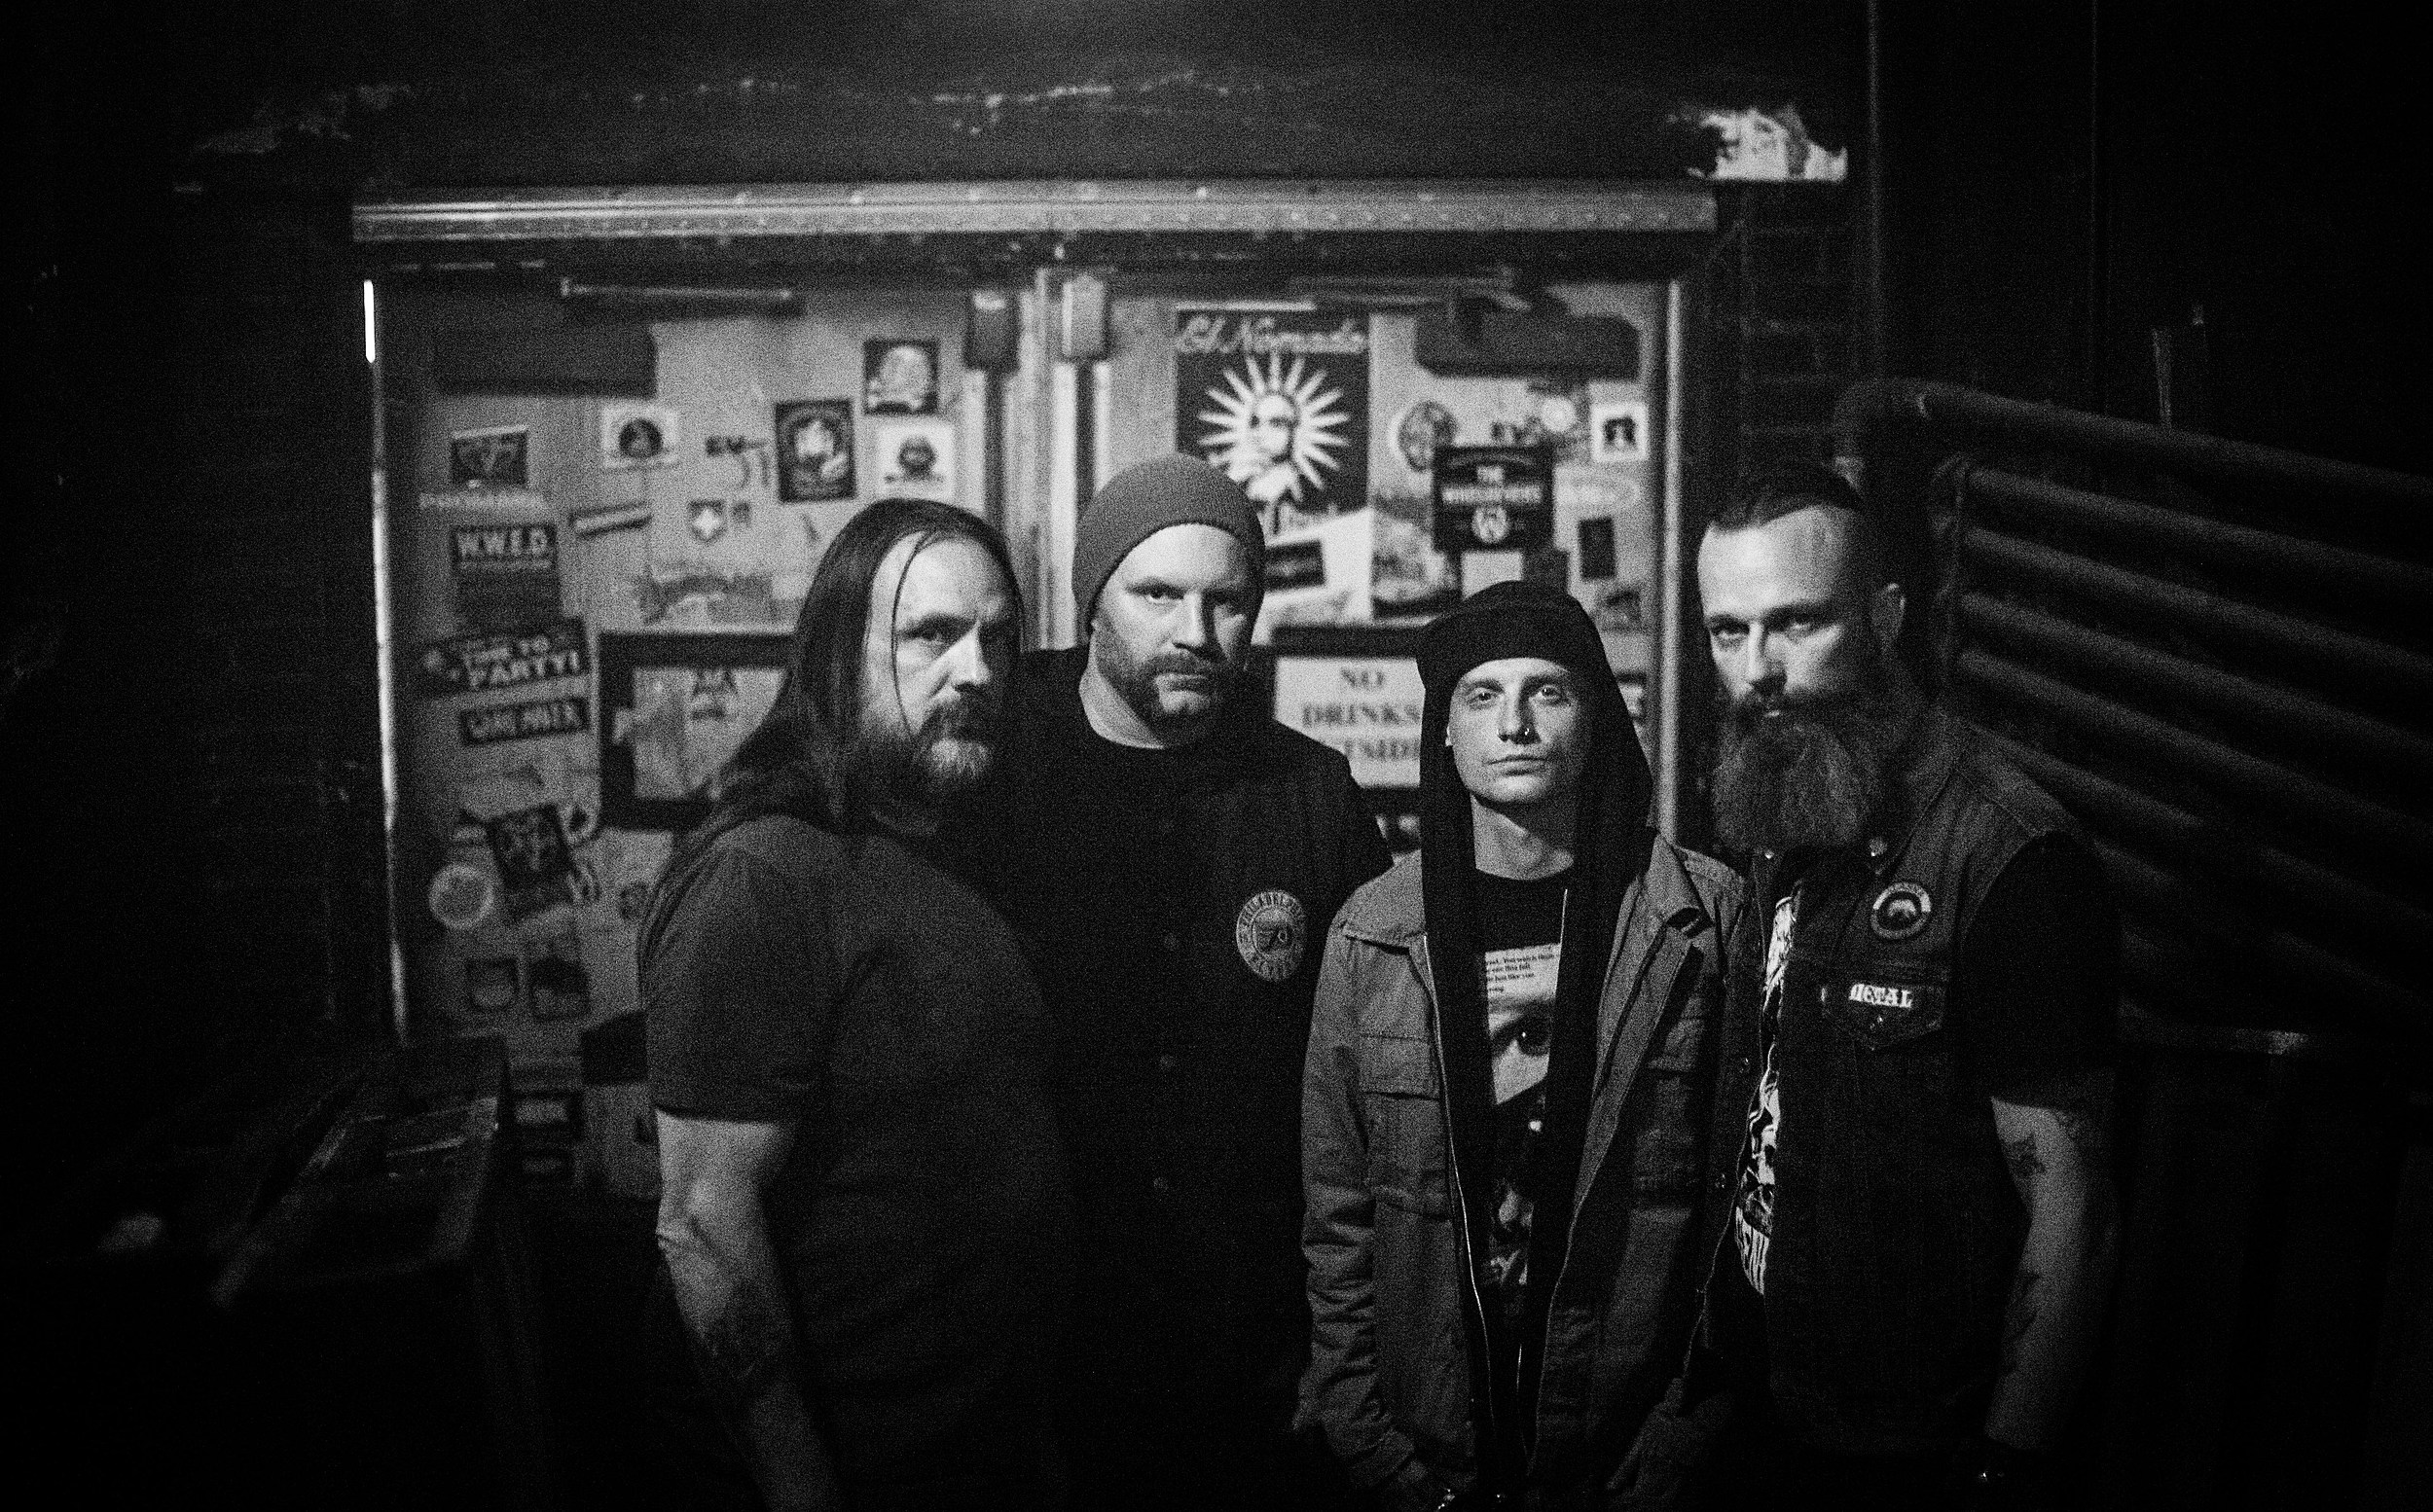 36 Crazyfists Battle the Cold in 'Wars to Walk Away From' Video – Exclusive Premiere